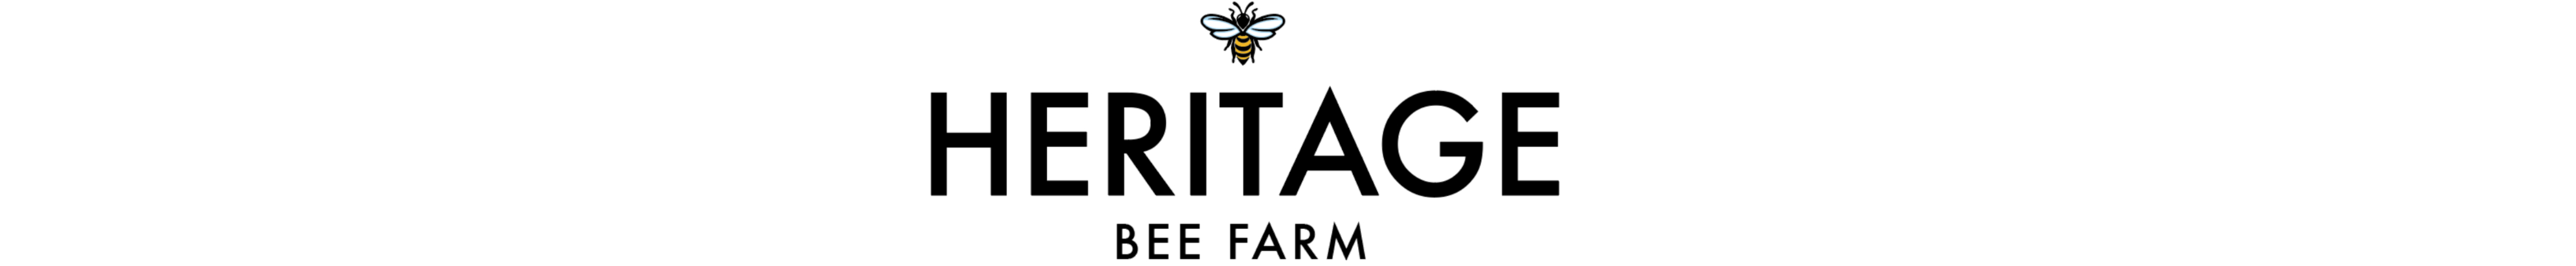 Heritage Bees